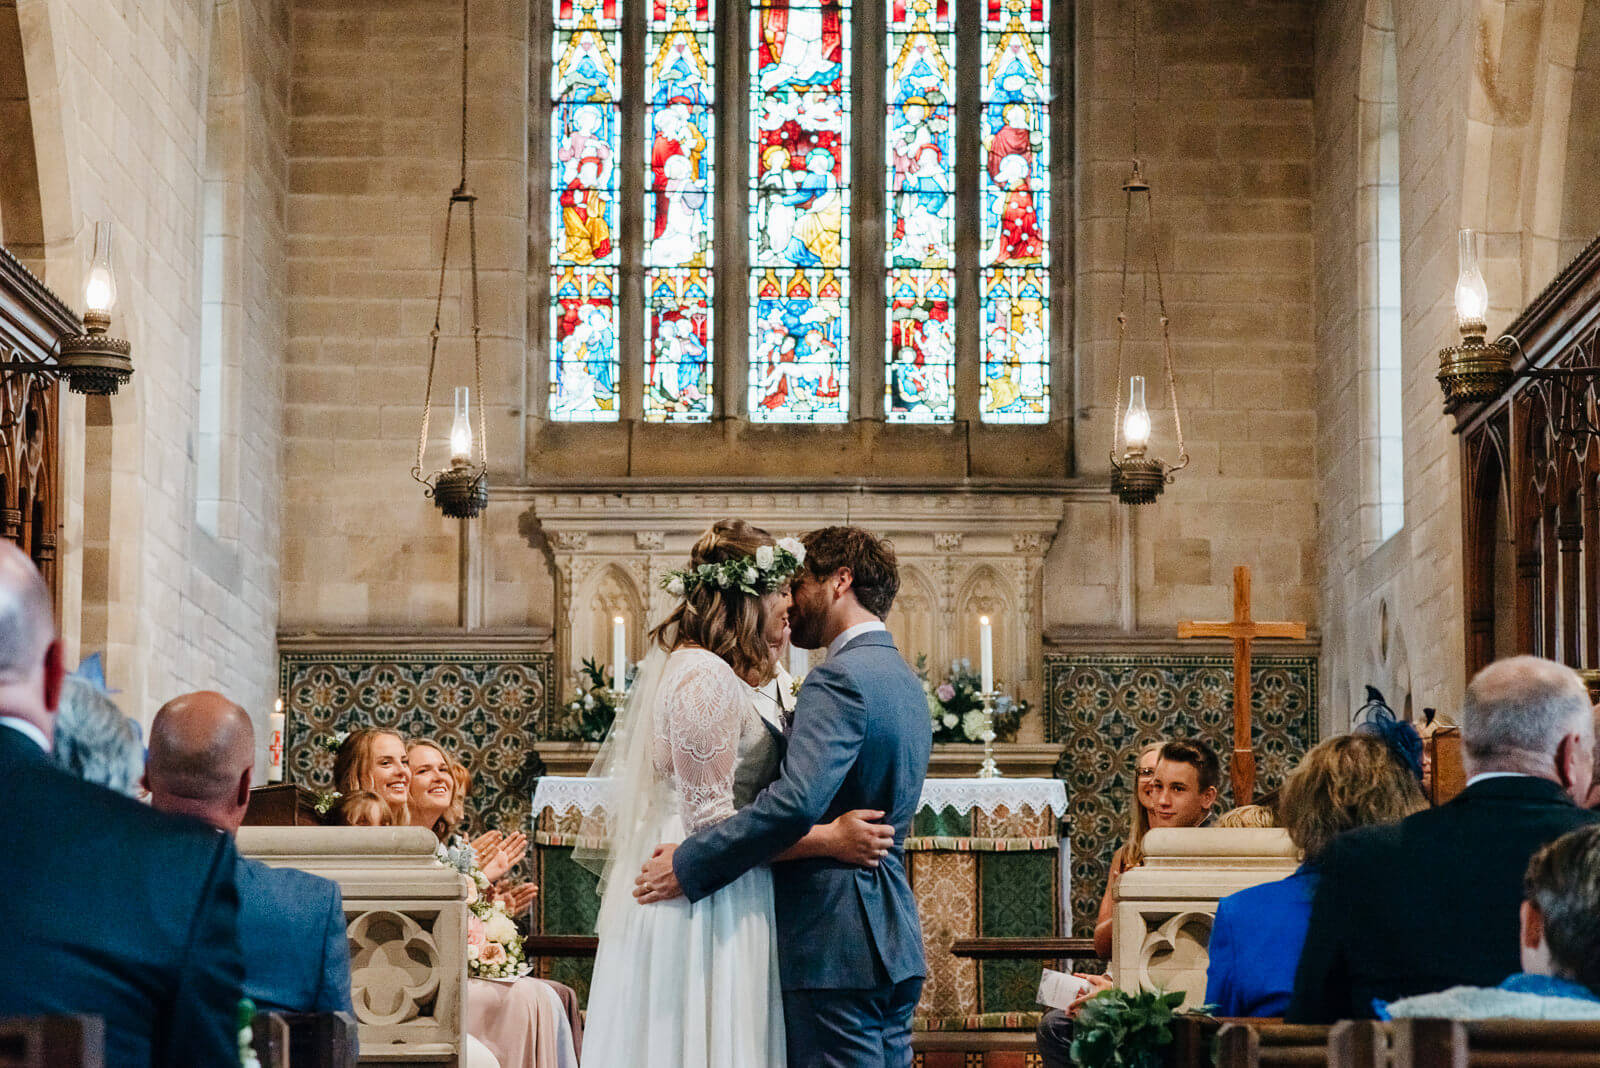 Bride and groom kissing during wedding ceremony at Bettisfield Church, Shropshire